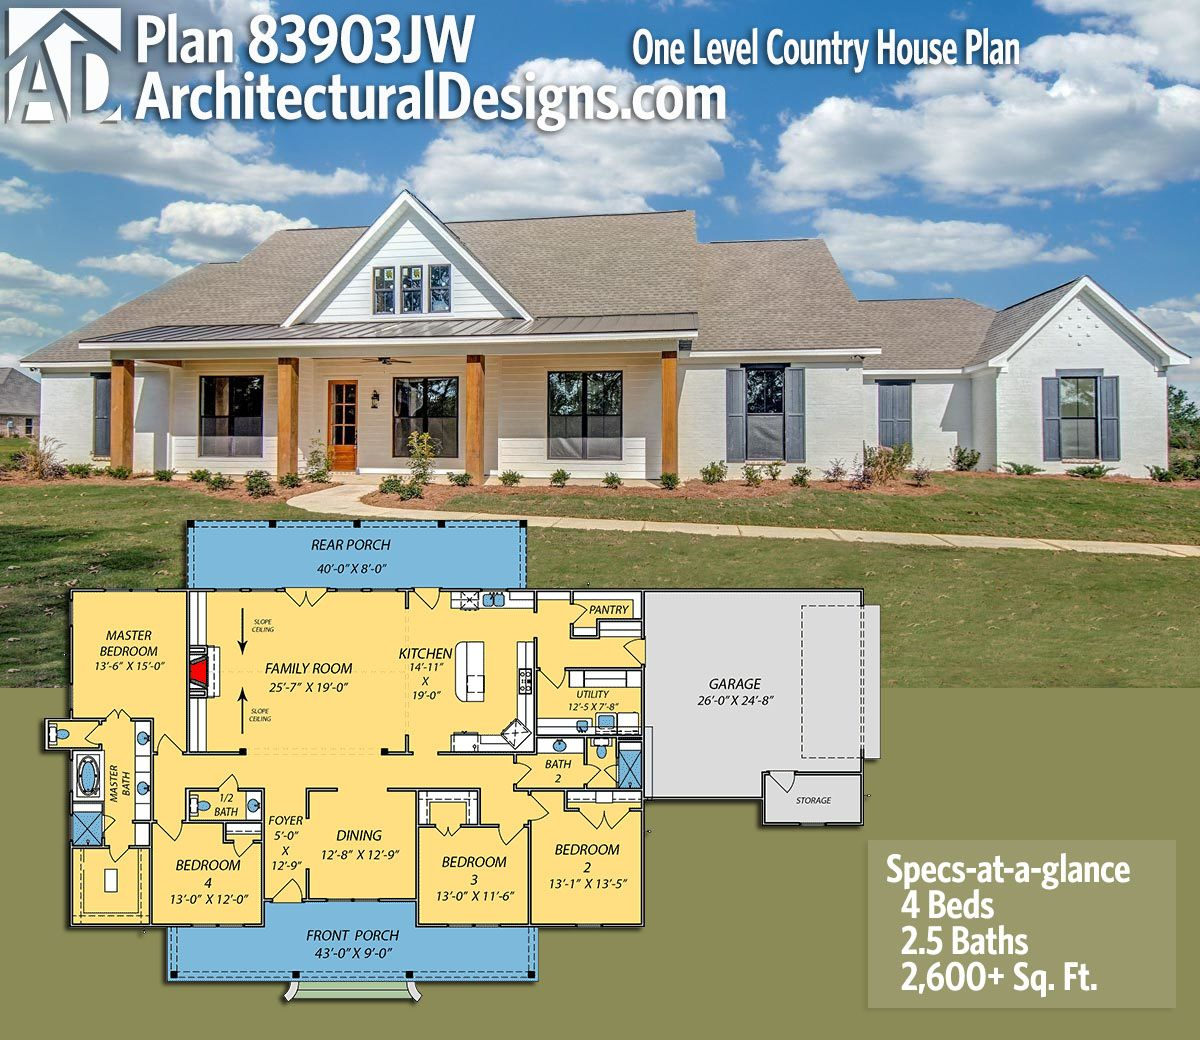 Plan 83903jw one level country house plan architectural for Architect design house plans